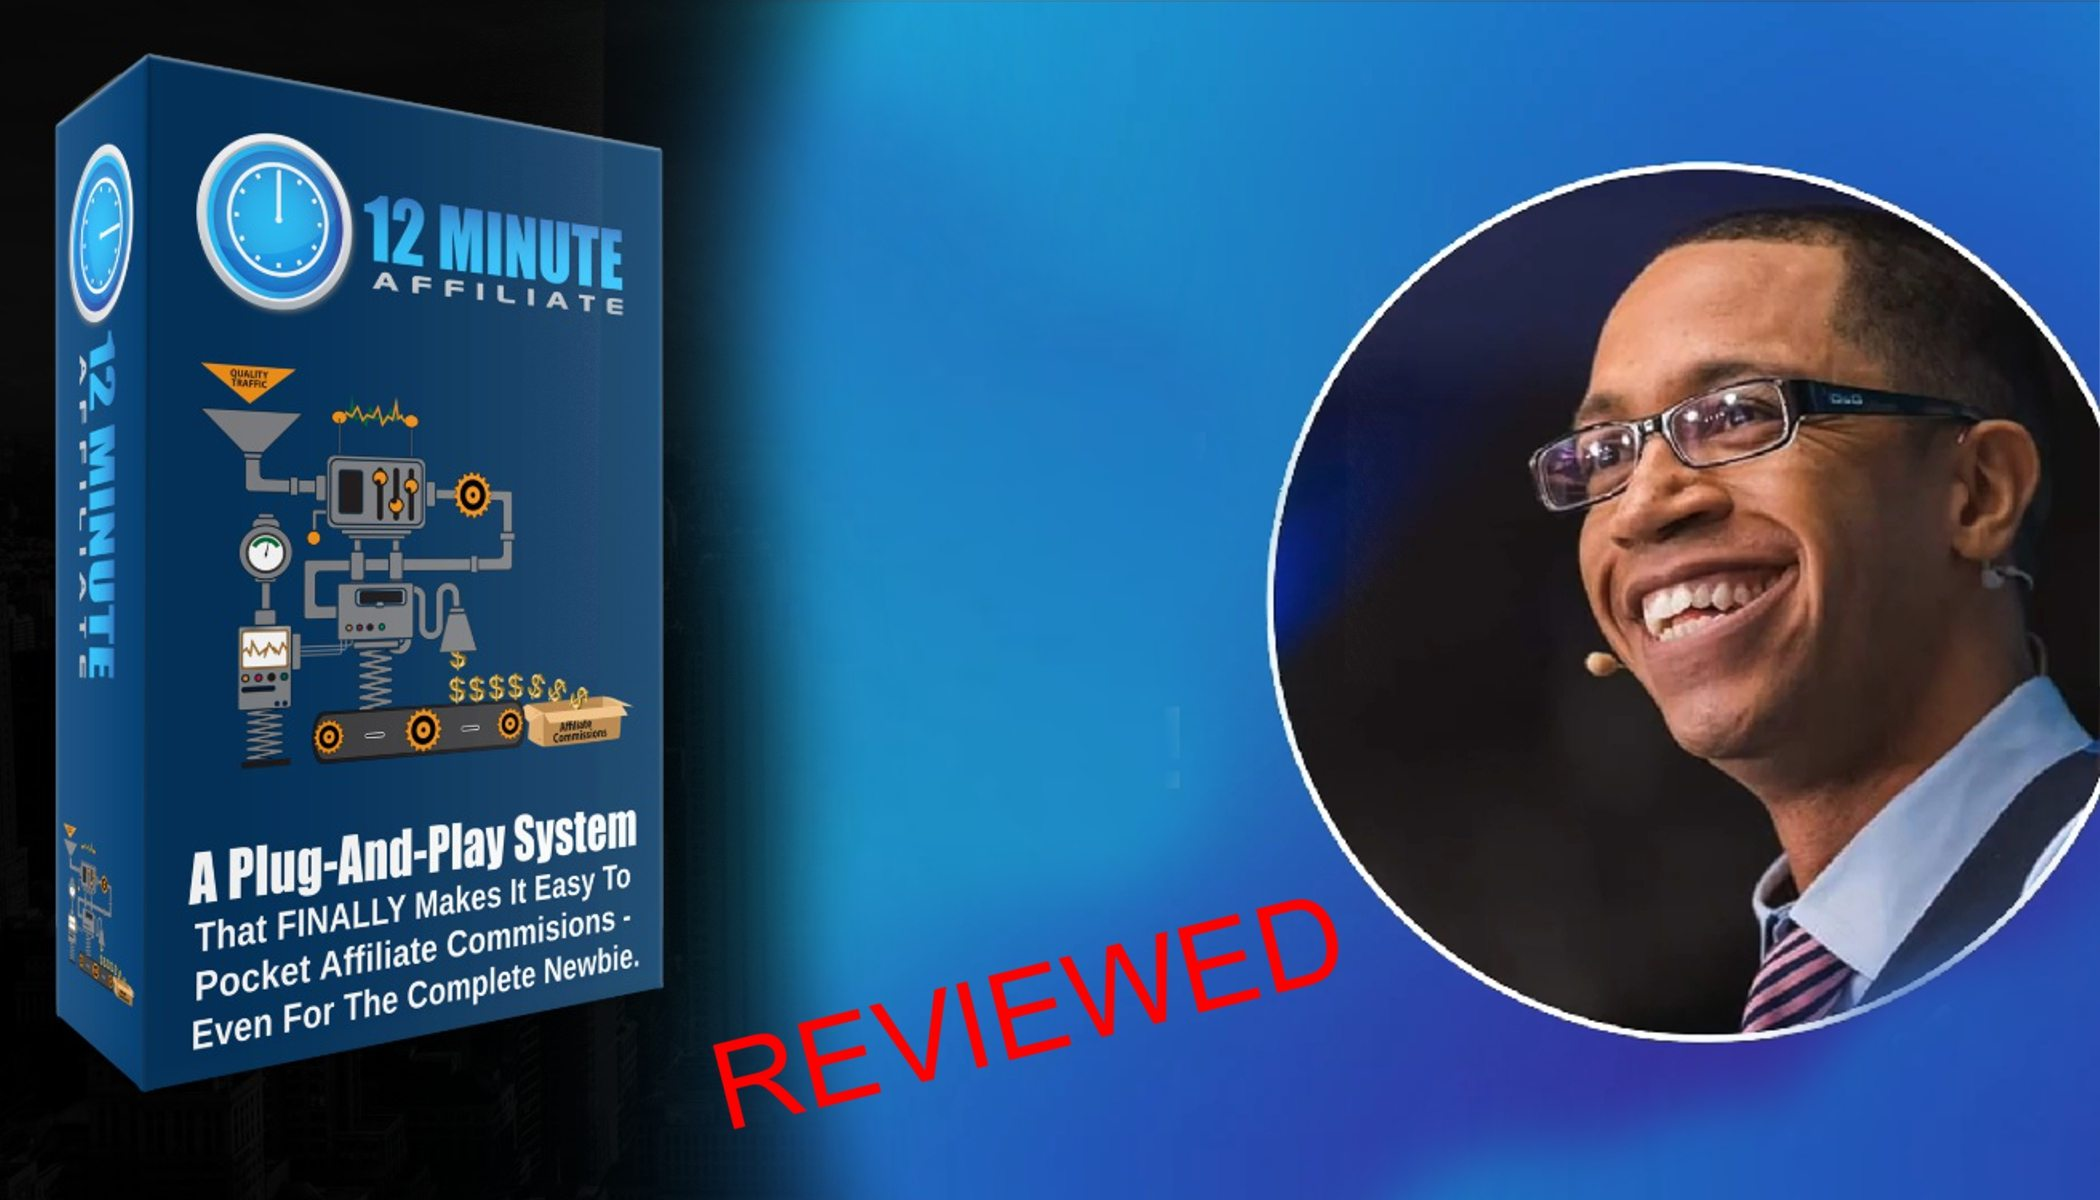 Is 12 Minute Affiliate Scam? – The hidden truth exposed in this review